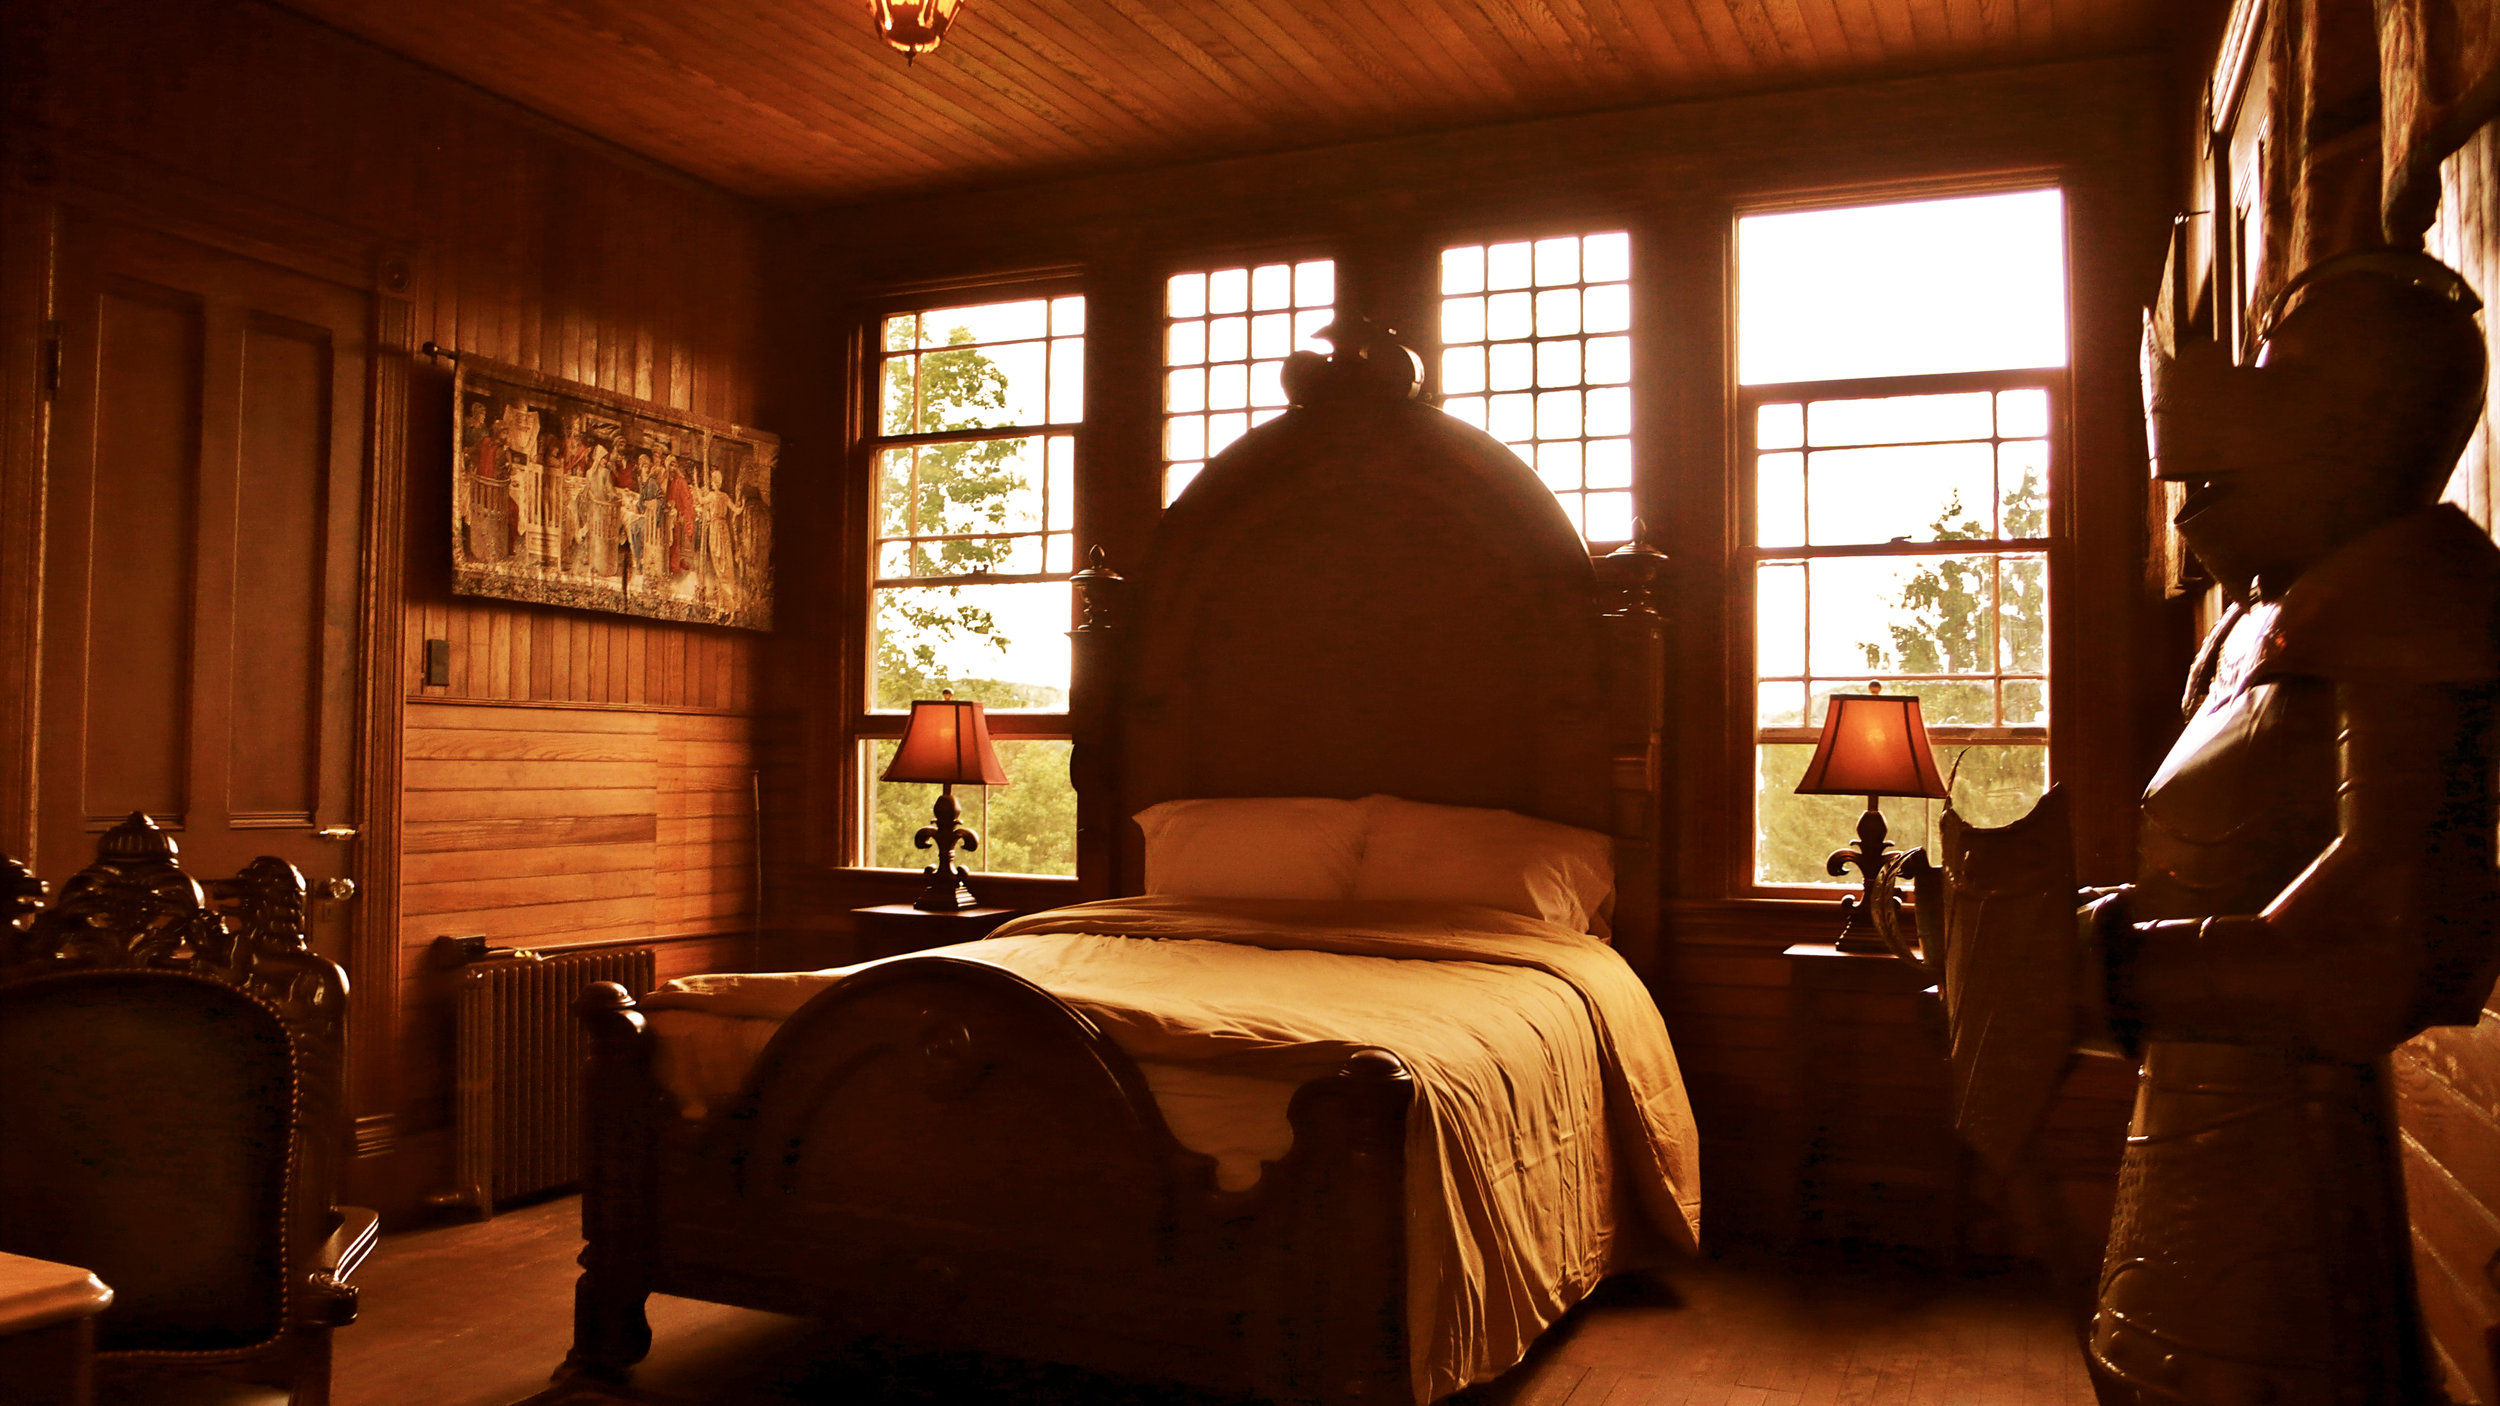 THE CAMELOT ROOM